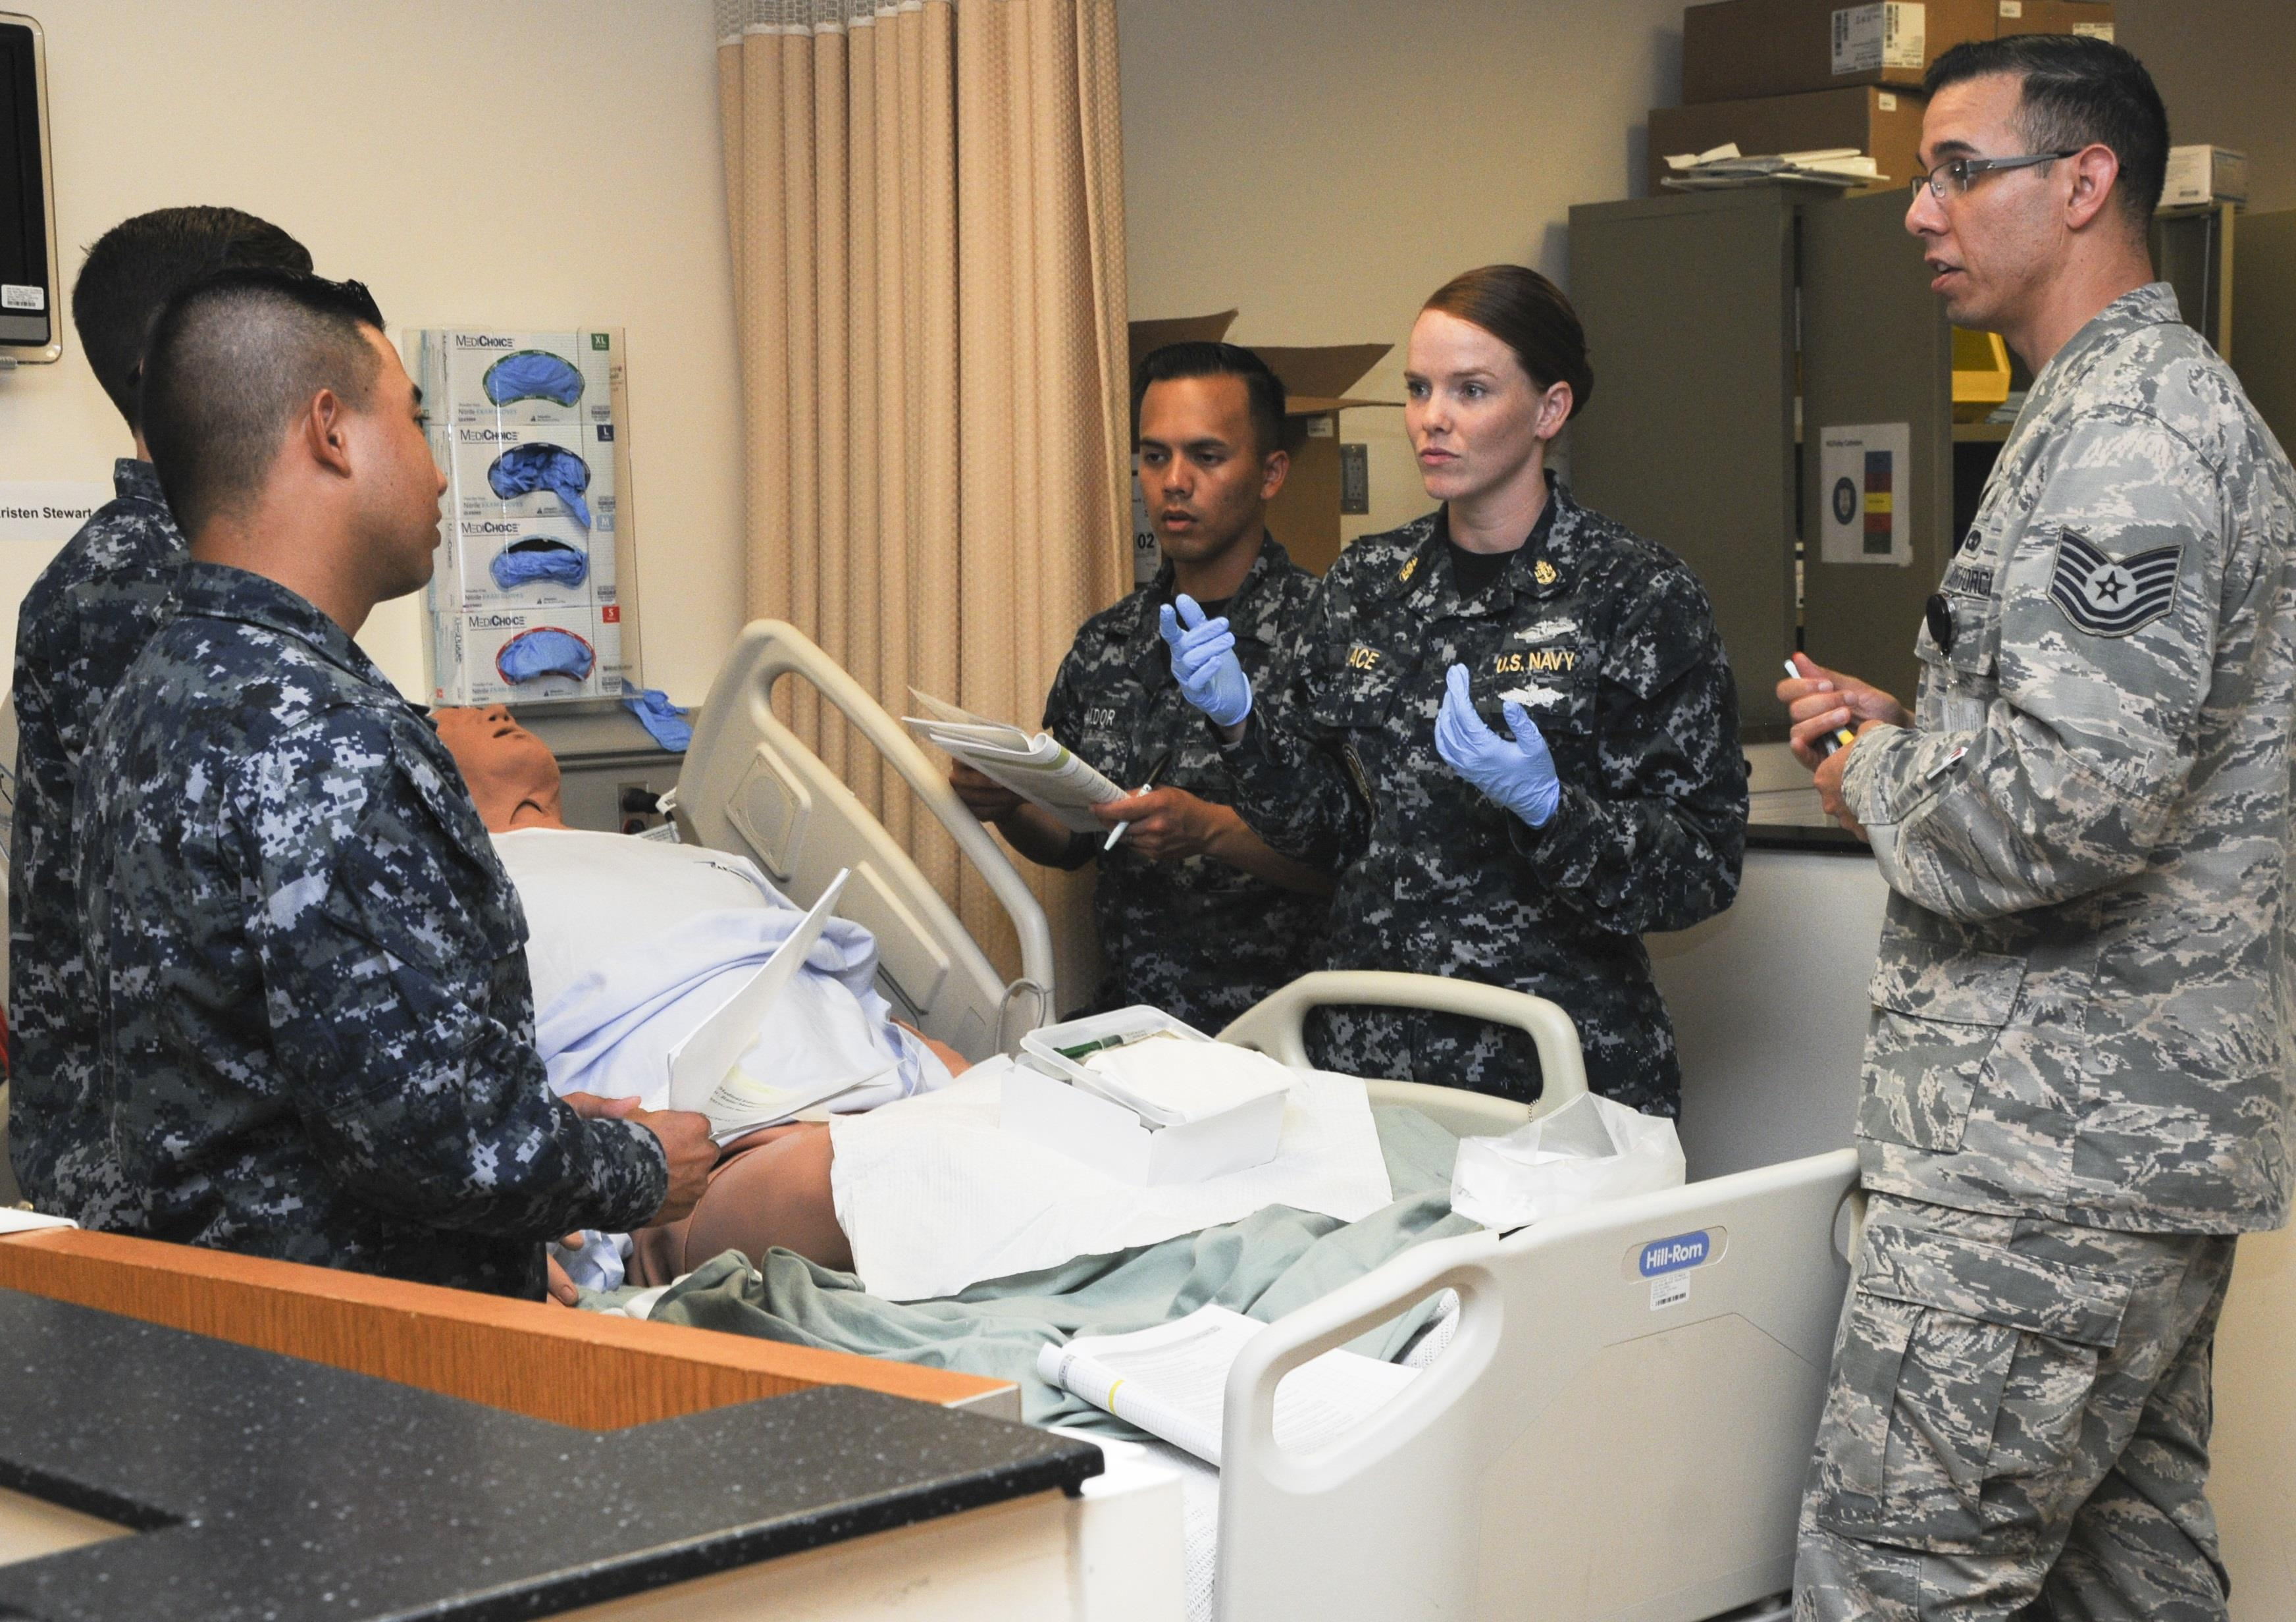 Navy Corpsman training revision coming to Joint Base San Antonio ...